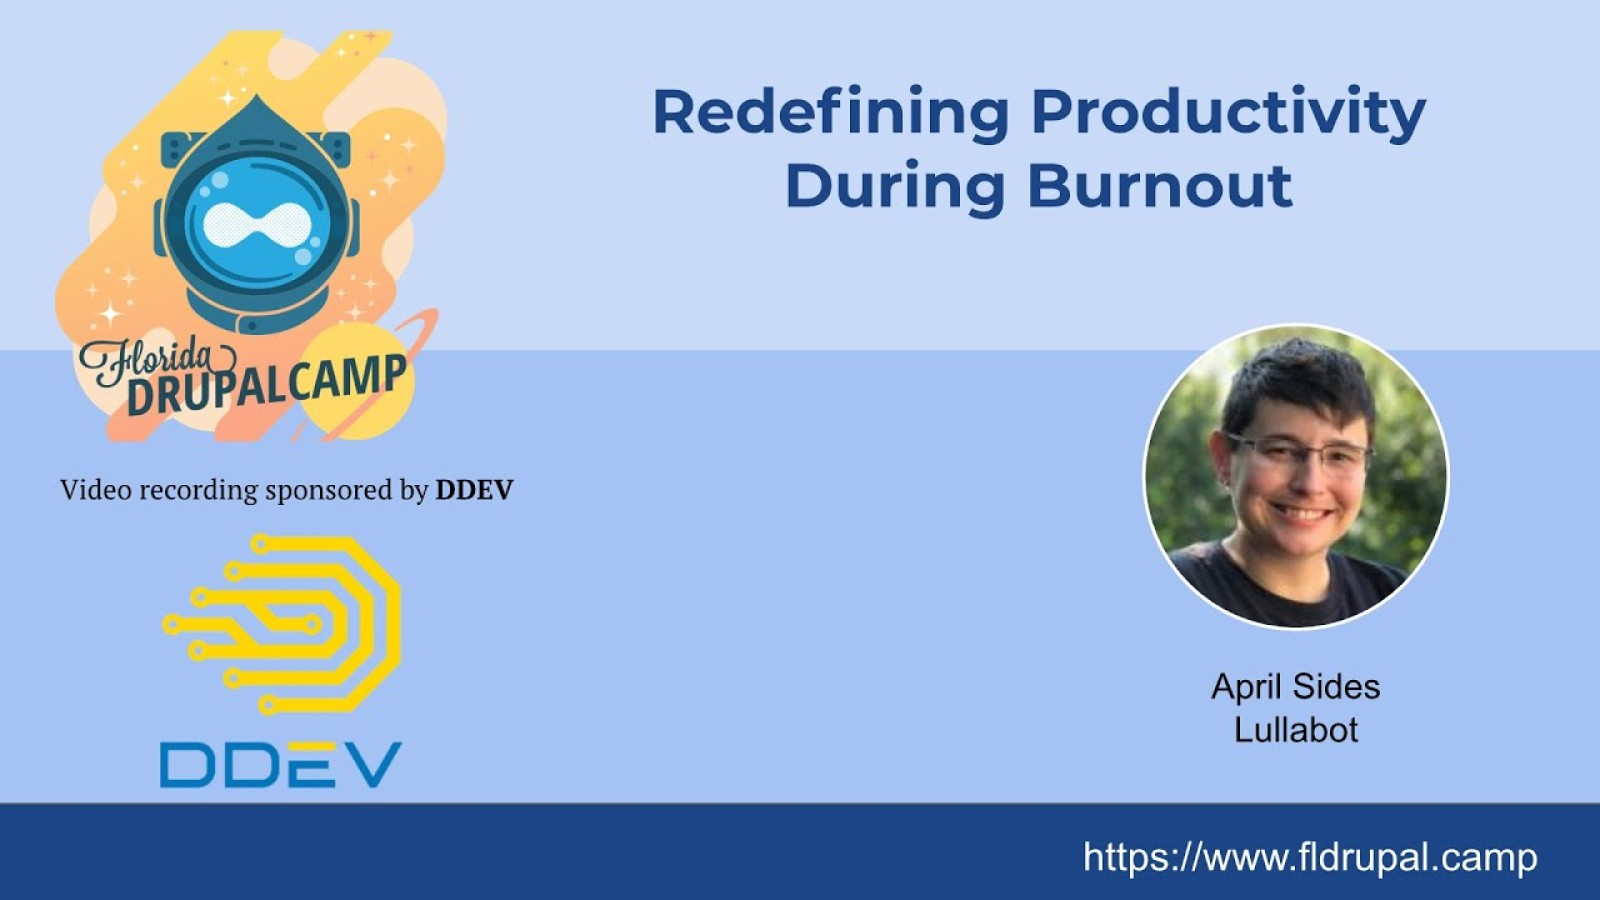 Redefining productivity during burnout